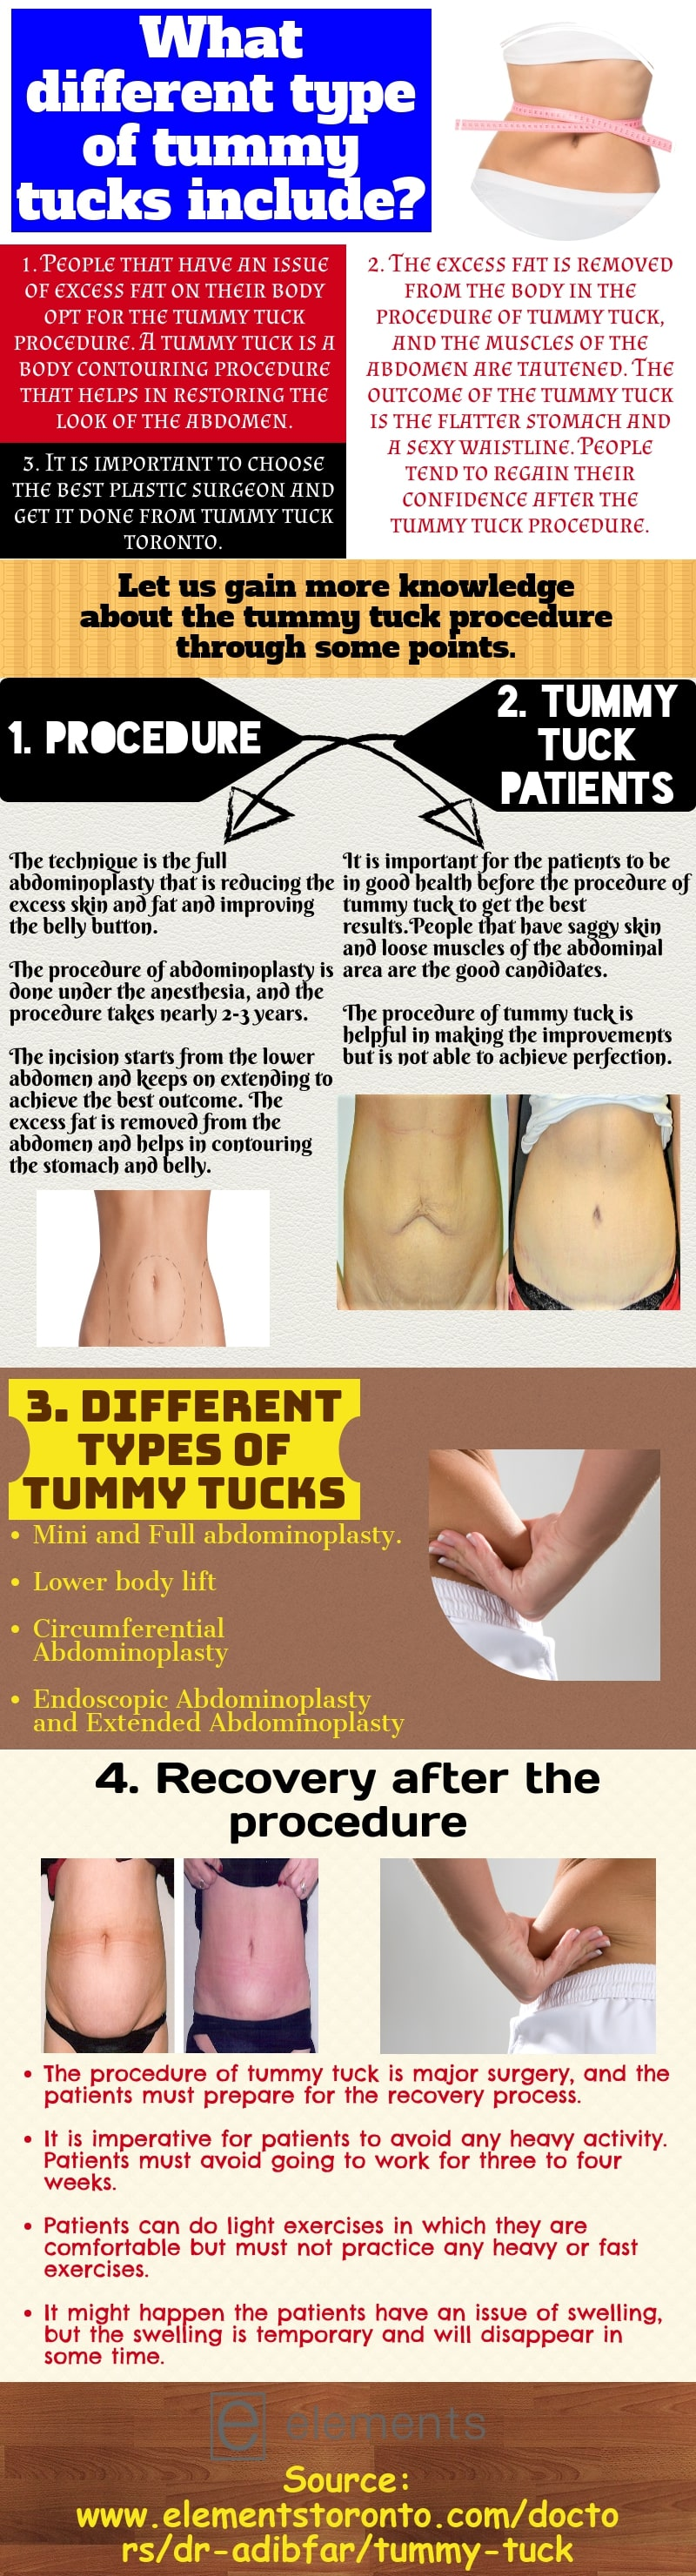 Tummy tucks-Performed by a professional surgeon